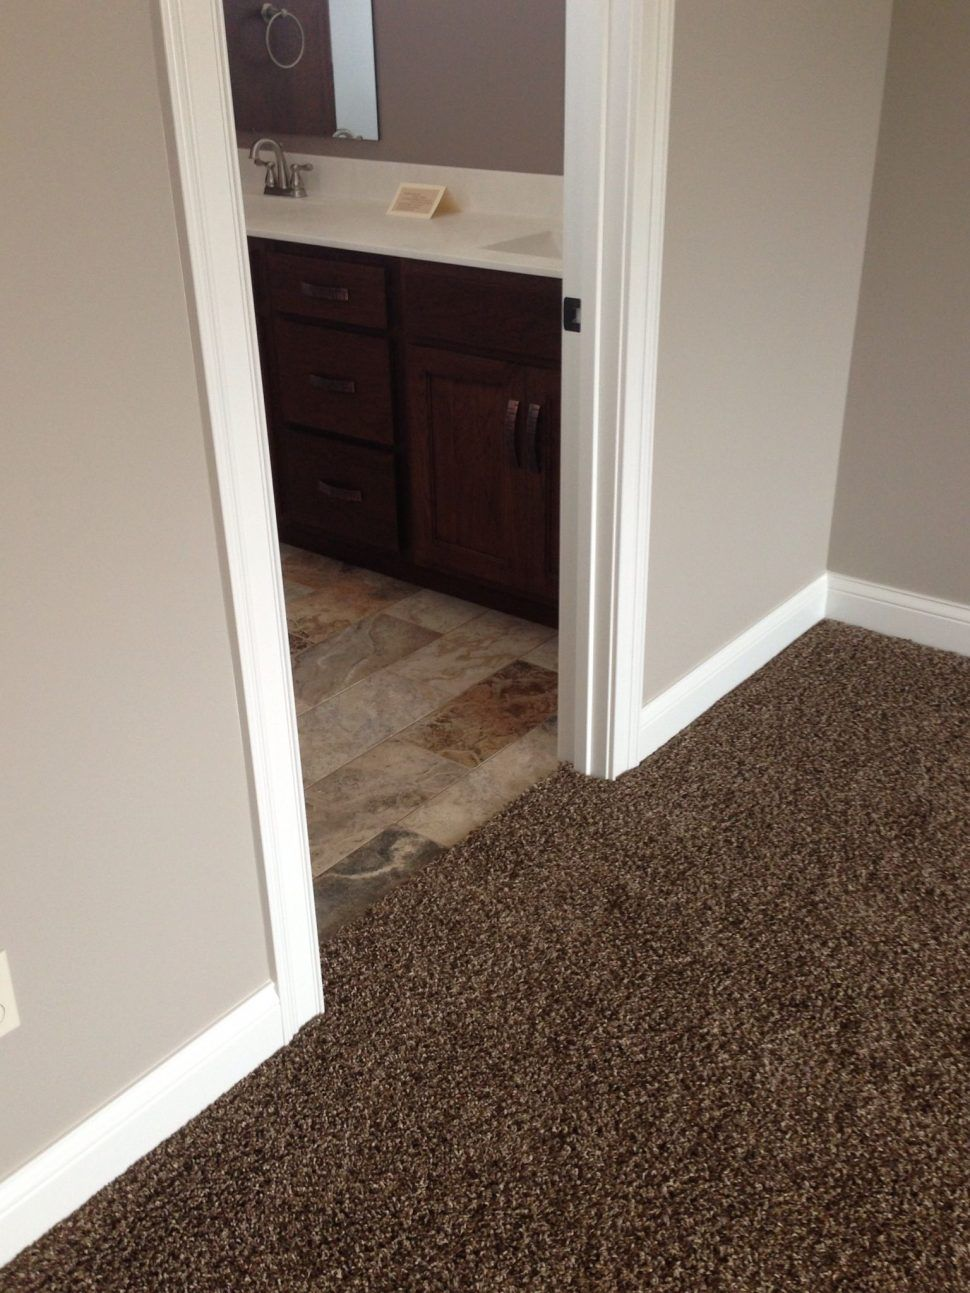 Bedroom Like Carpet Looks Much Darker In This Pic And Tile Co